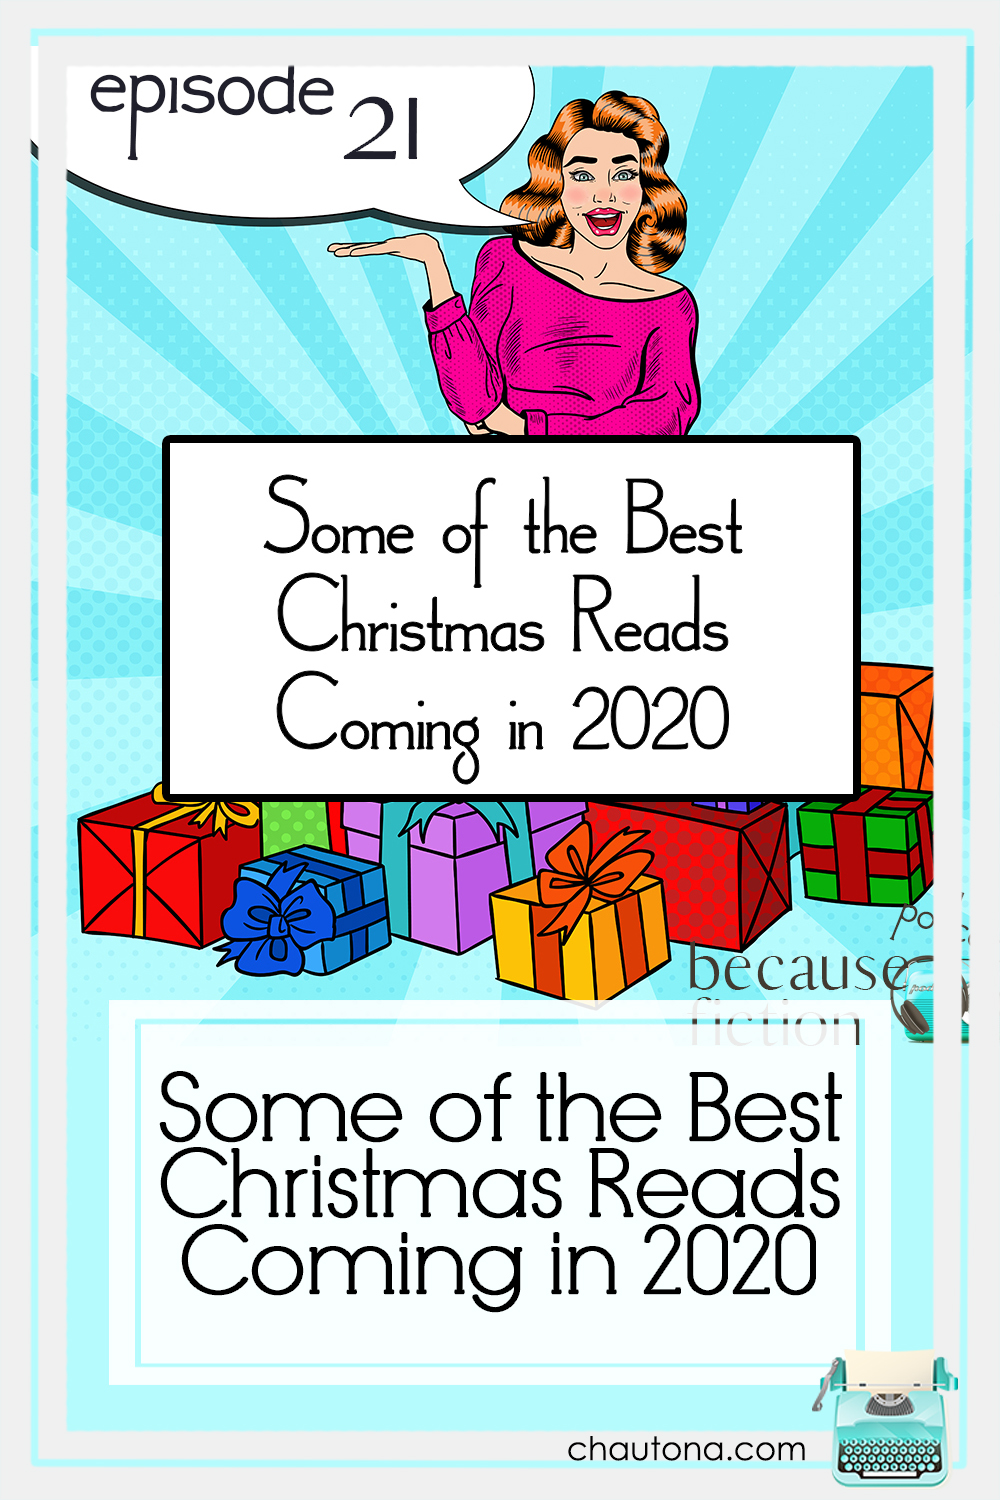 Some of the Best Christmas Reads Coming in 2020